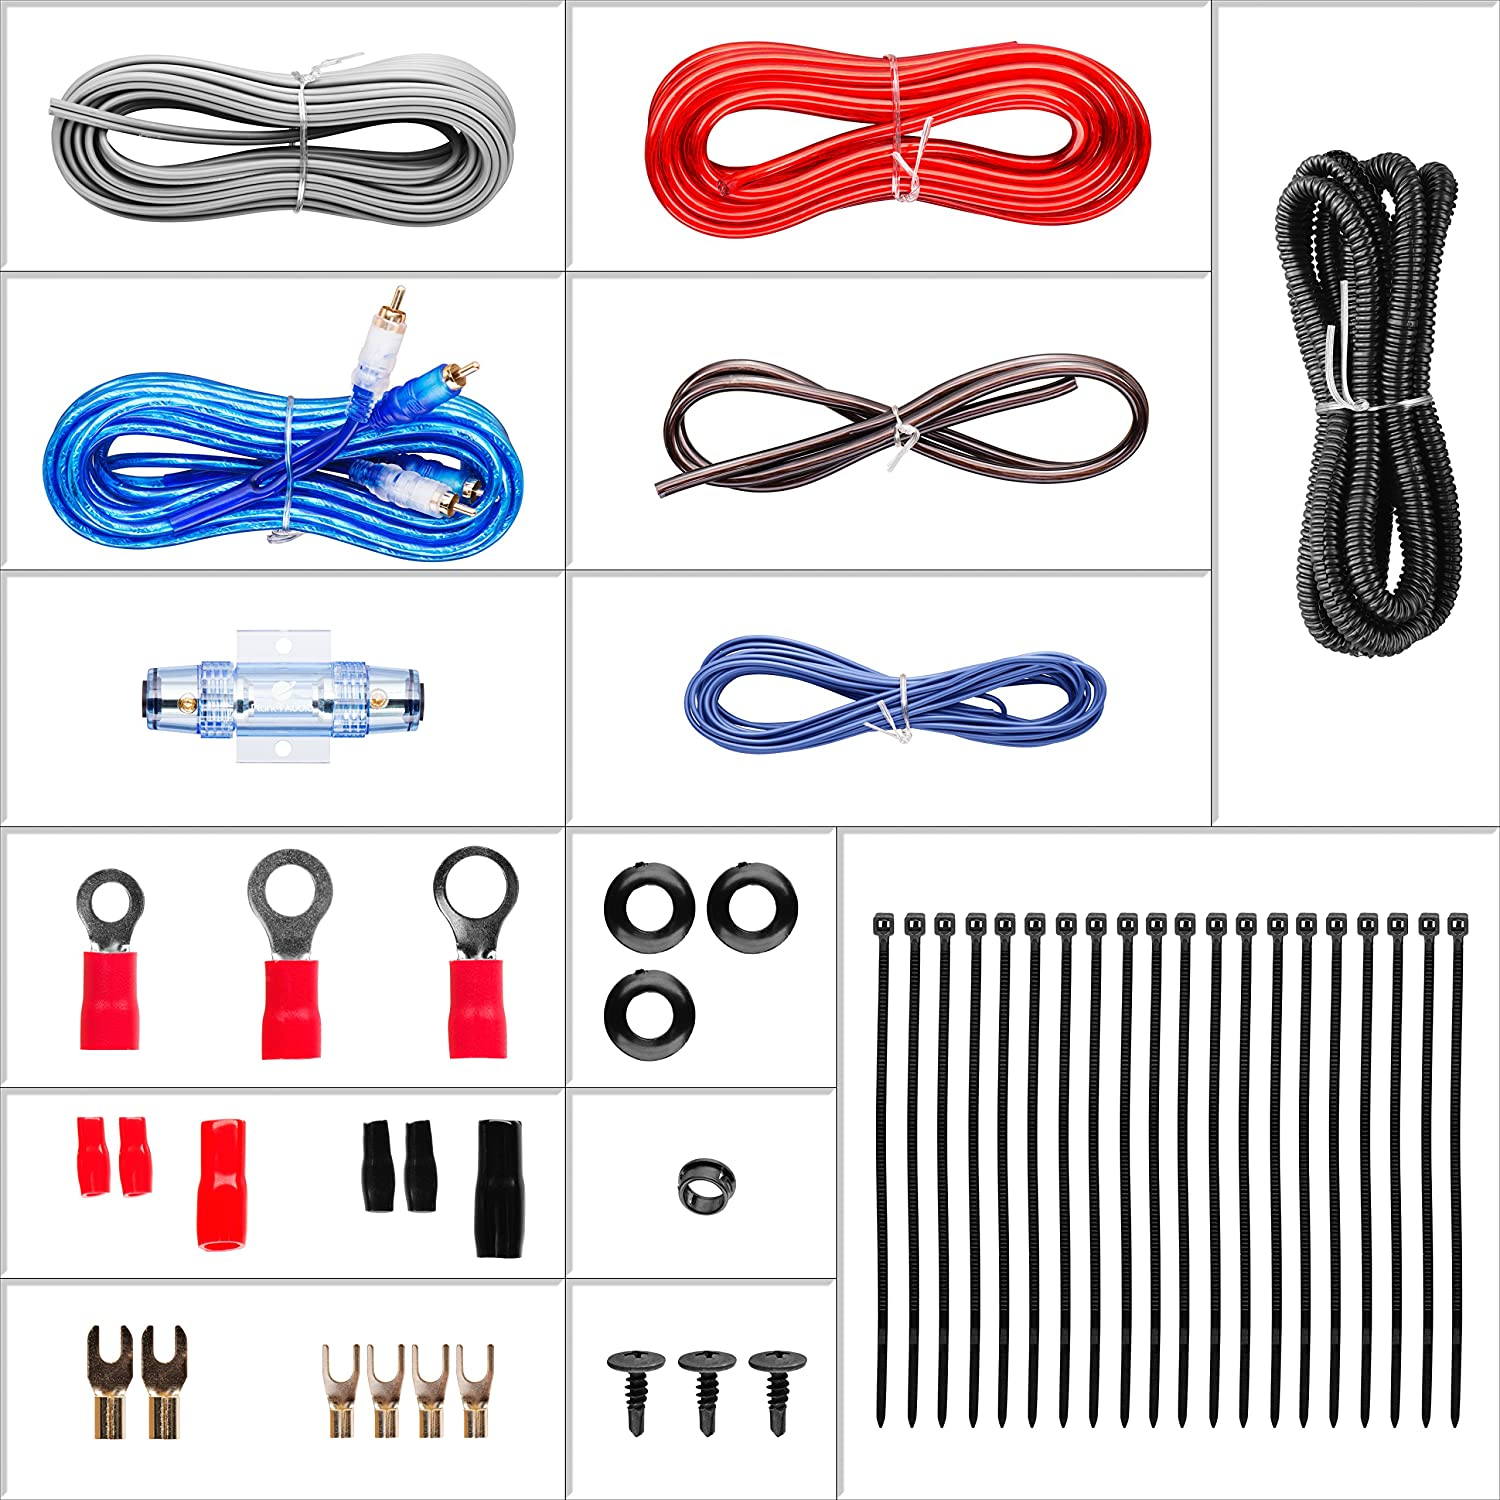 Planet Audio 4gpk 4 Gauge Amplifier Installation Wiring Kit Amazon Vibe Slick 2000w Car Amp Power Cable Wire Electronics